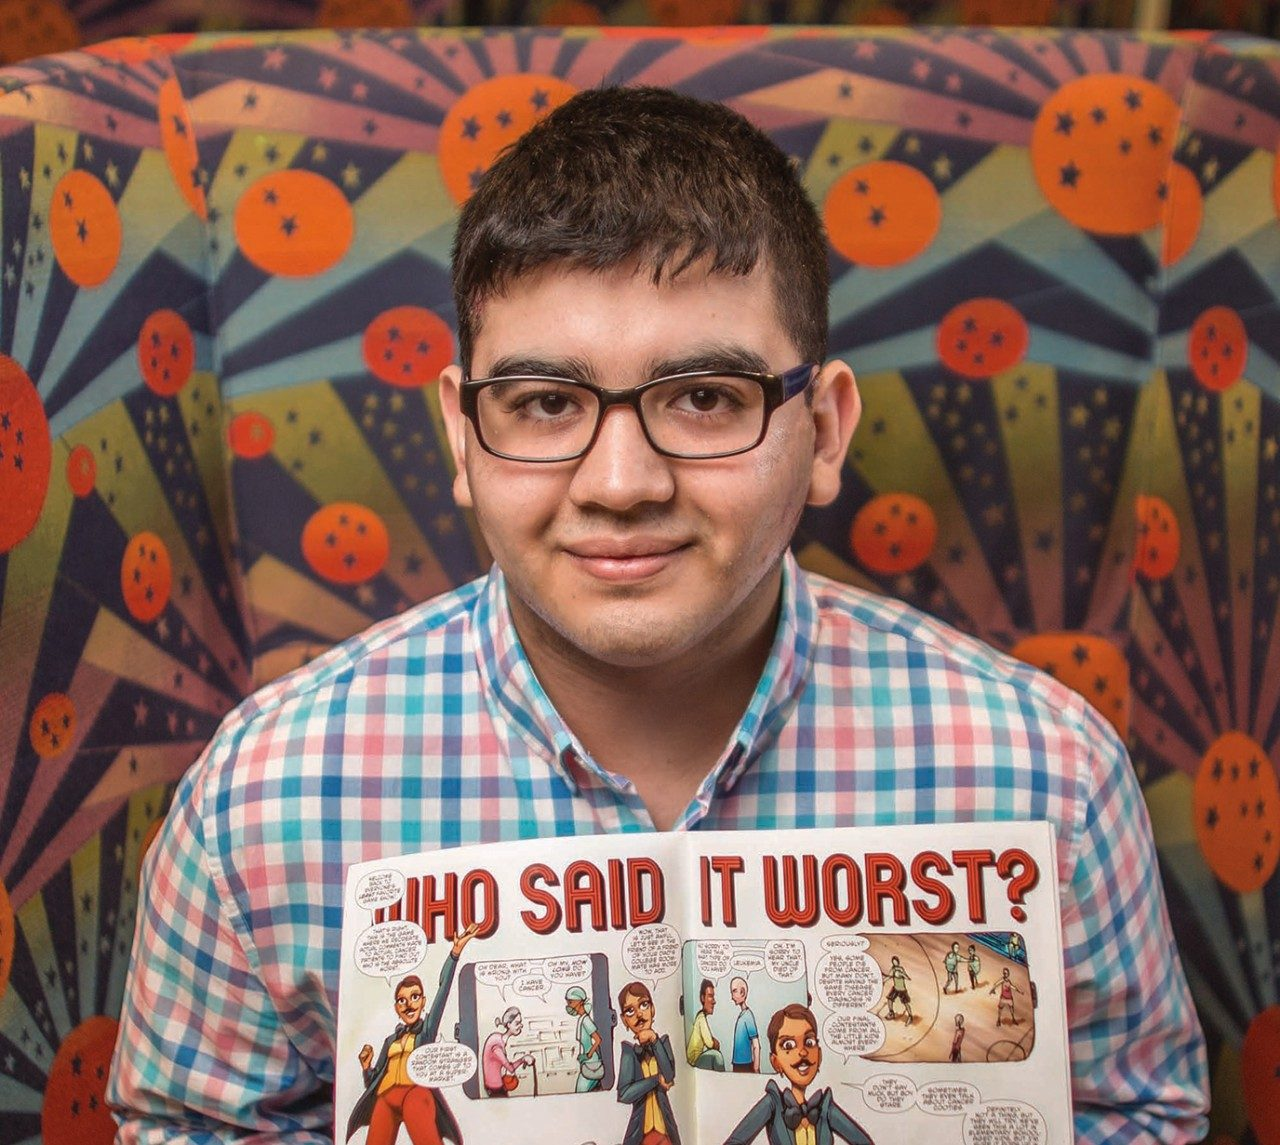 Mario Quezada helps create a comic book series about being a teen with cancer